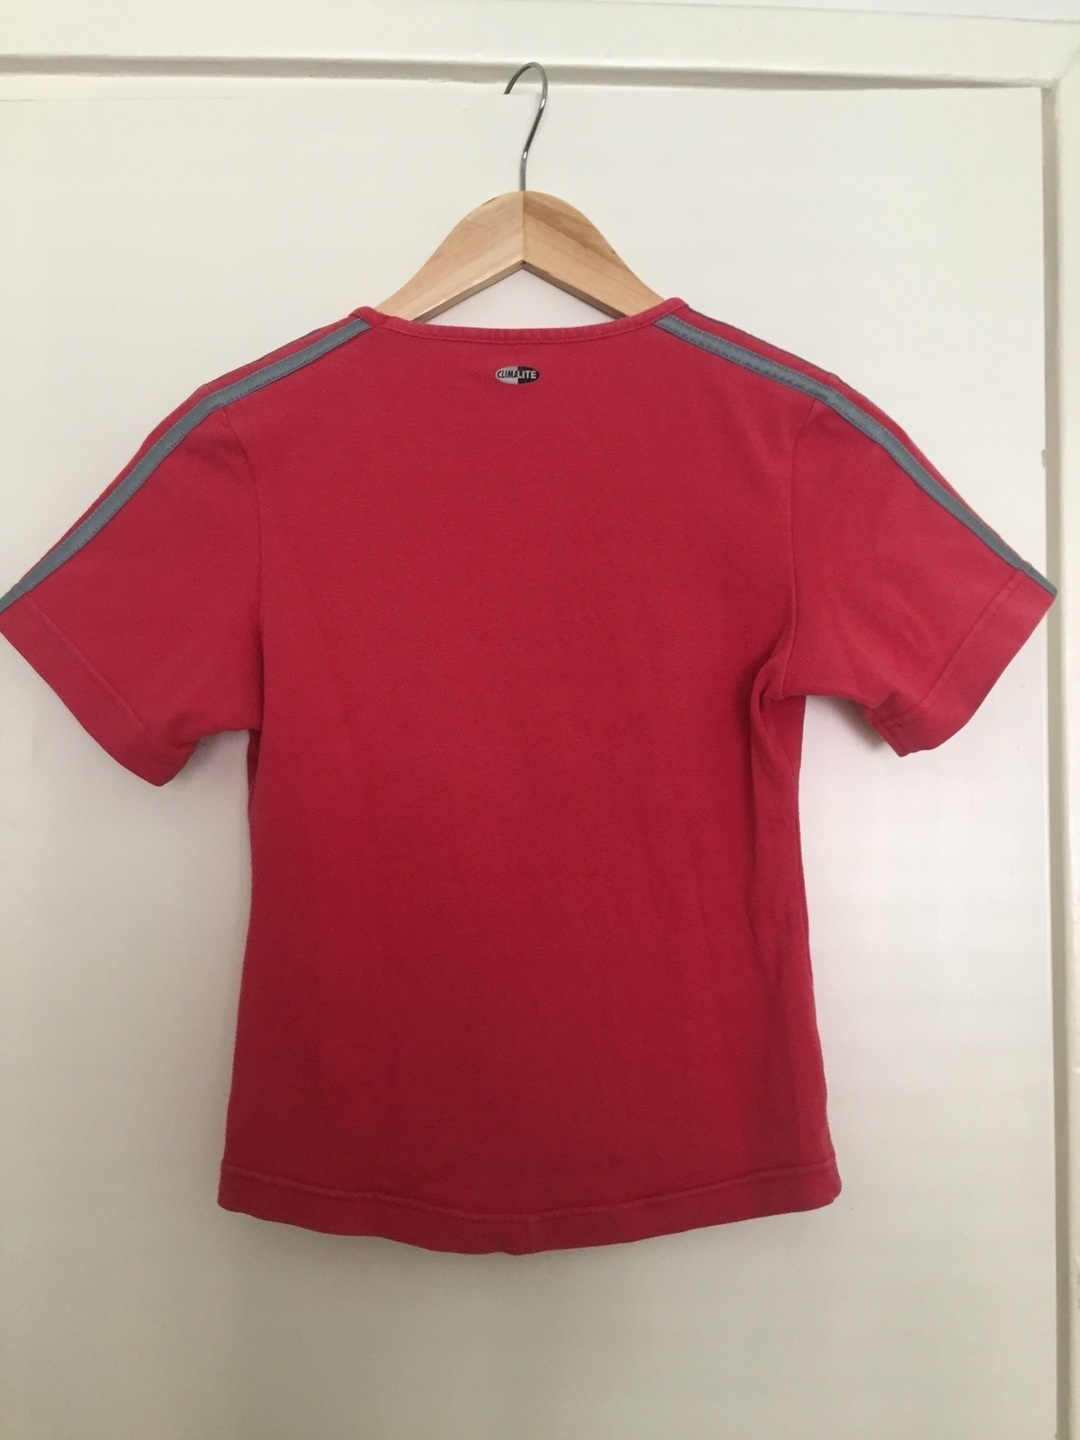 Damers toppe og t-shirts - ADIDAS photo 2